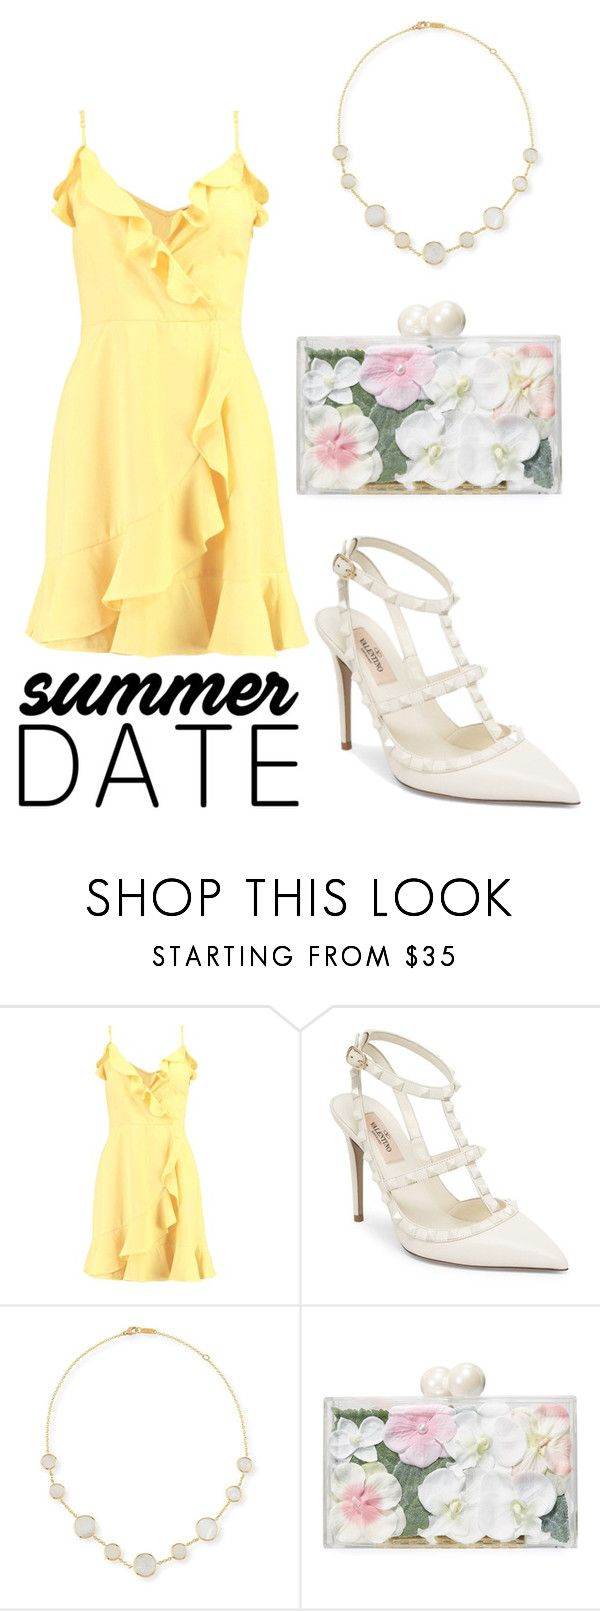 """""""Summertime date Night"""" by fashion-freaks ❤ liked on Polyvore featuring Boohoo, Valentino, Ippolita, Ashlyn'd, summerstyle, summerdress, yellowdress and summerdatenight"""